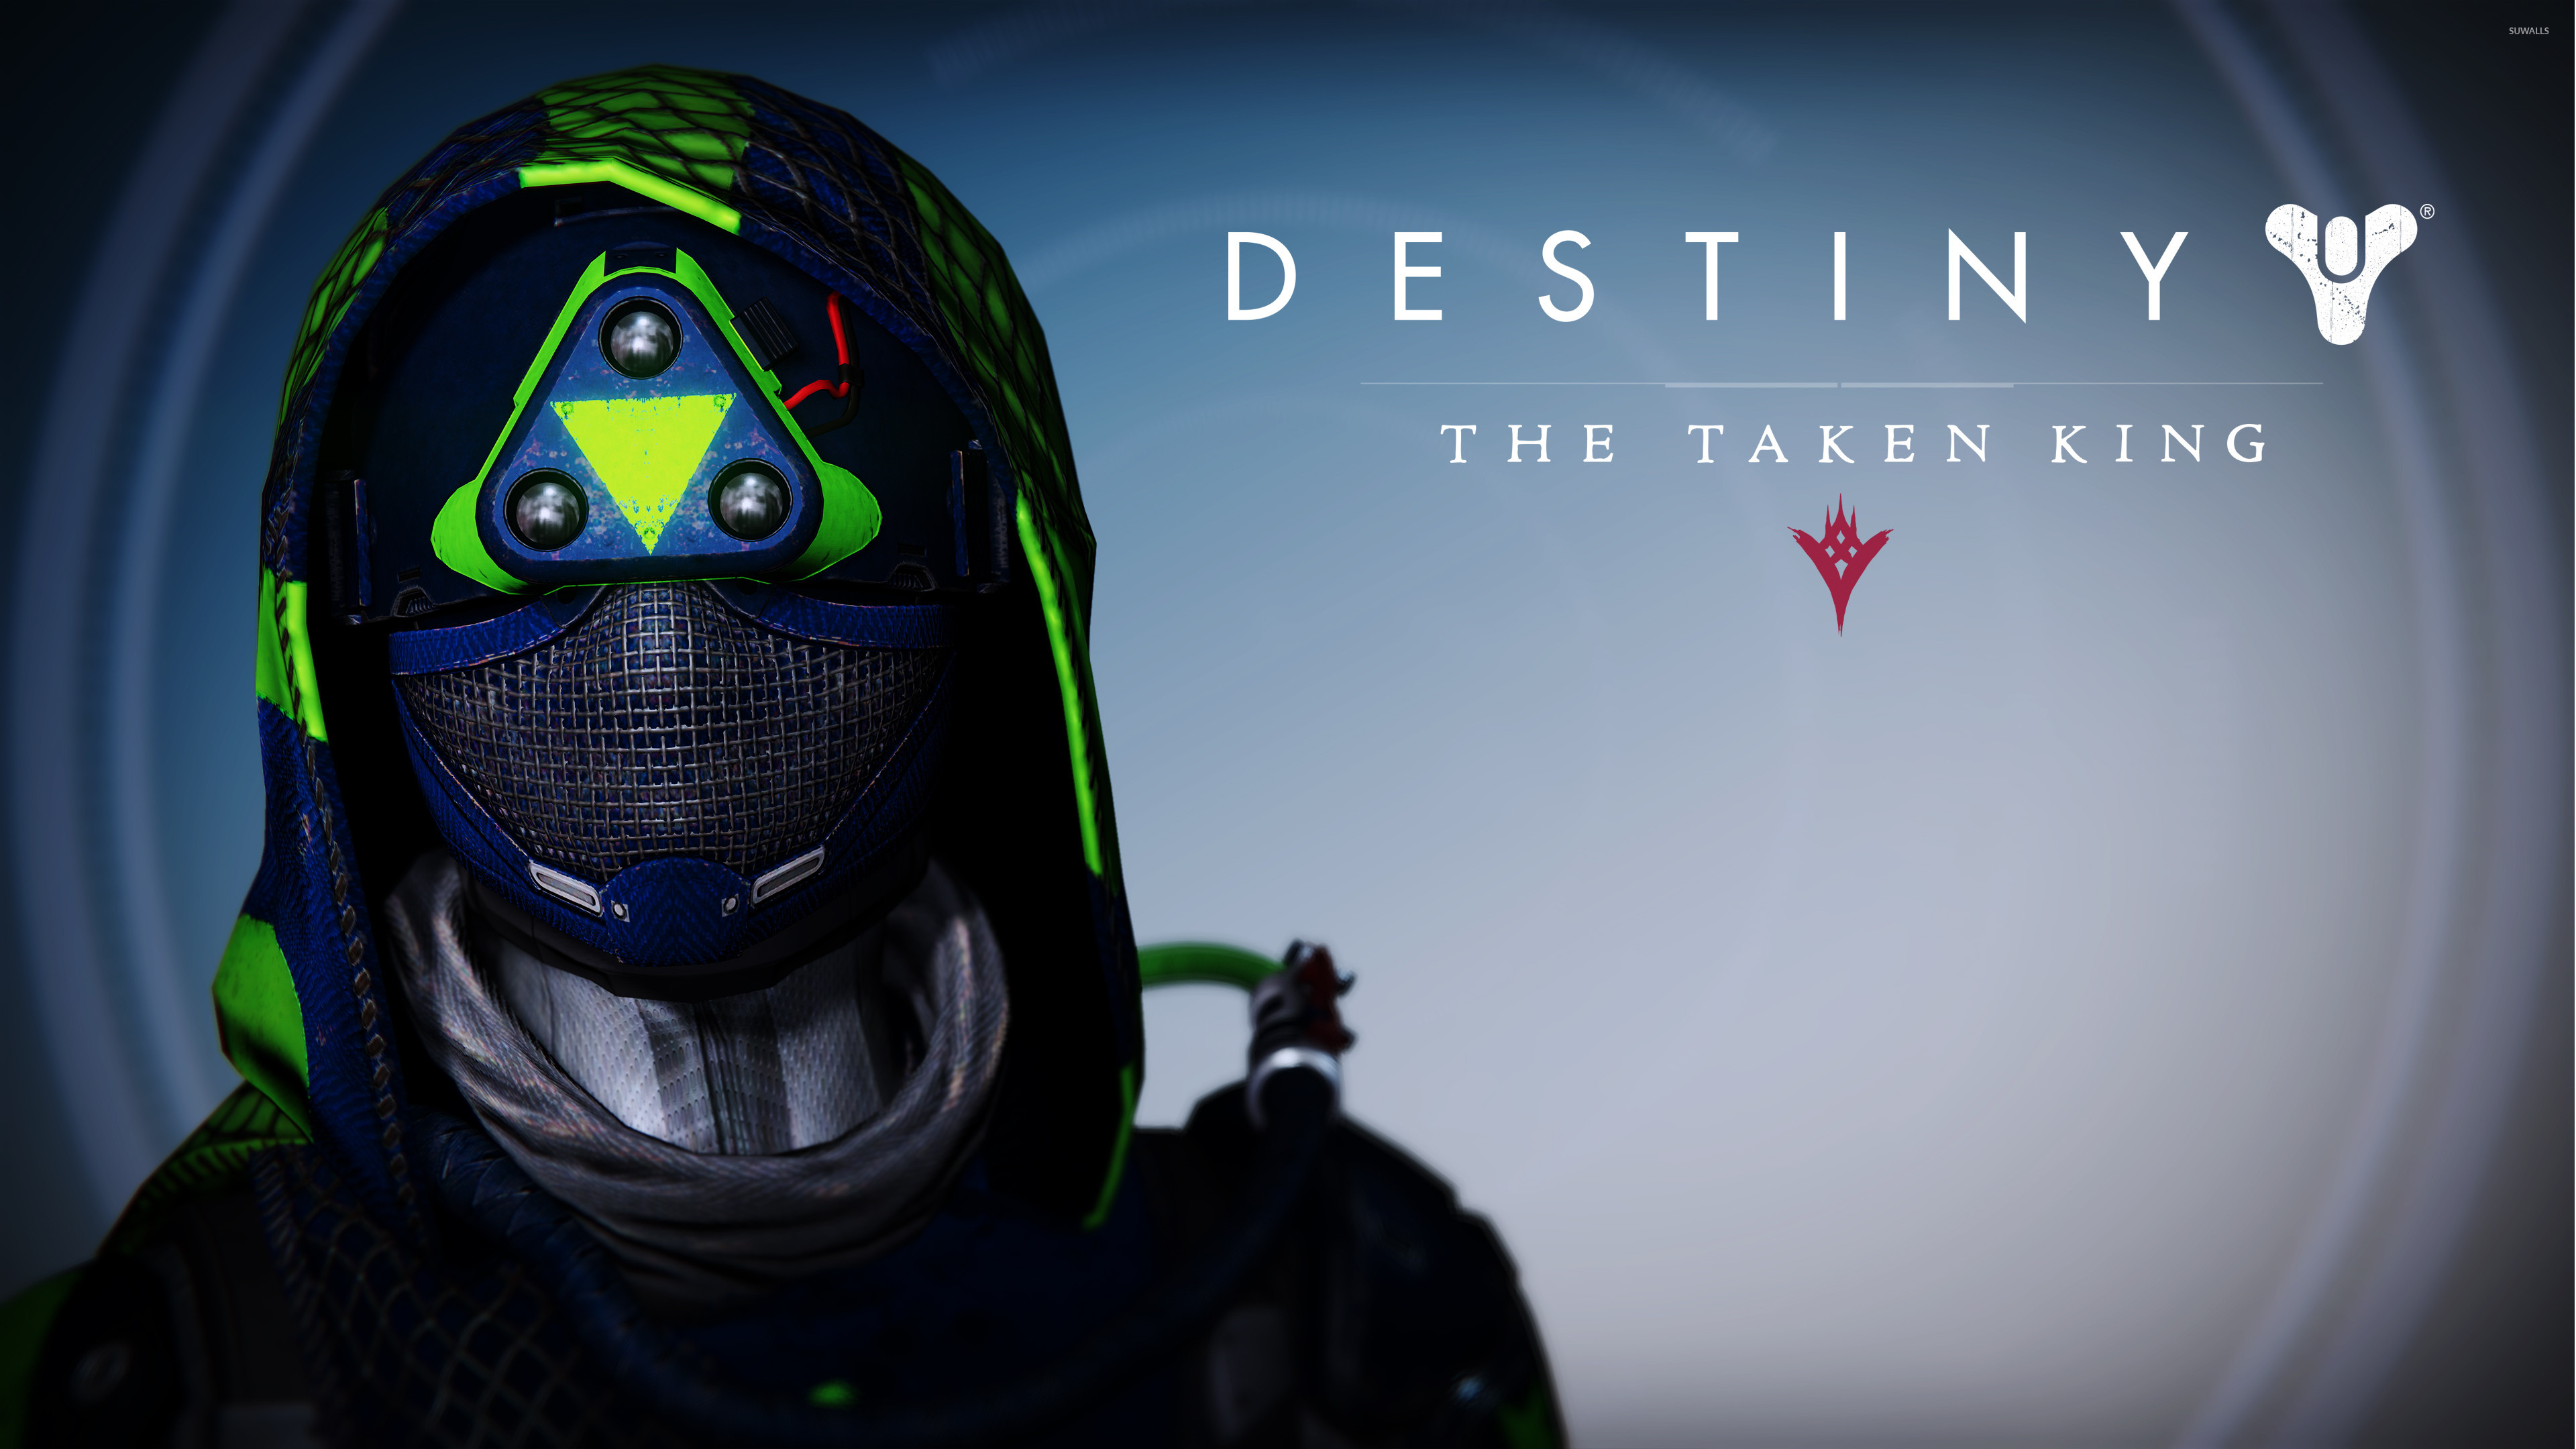 3840x2160 Hunter female helmet - Destiny: The Taken King wallpaper  jpg